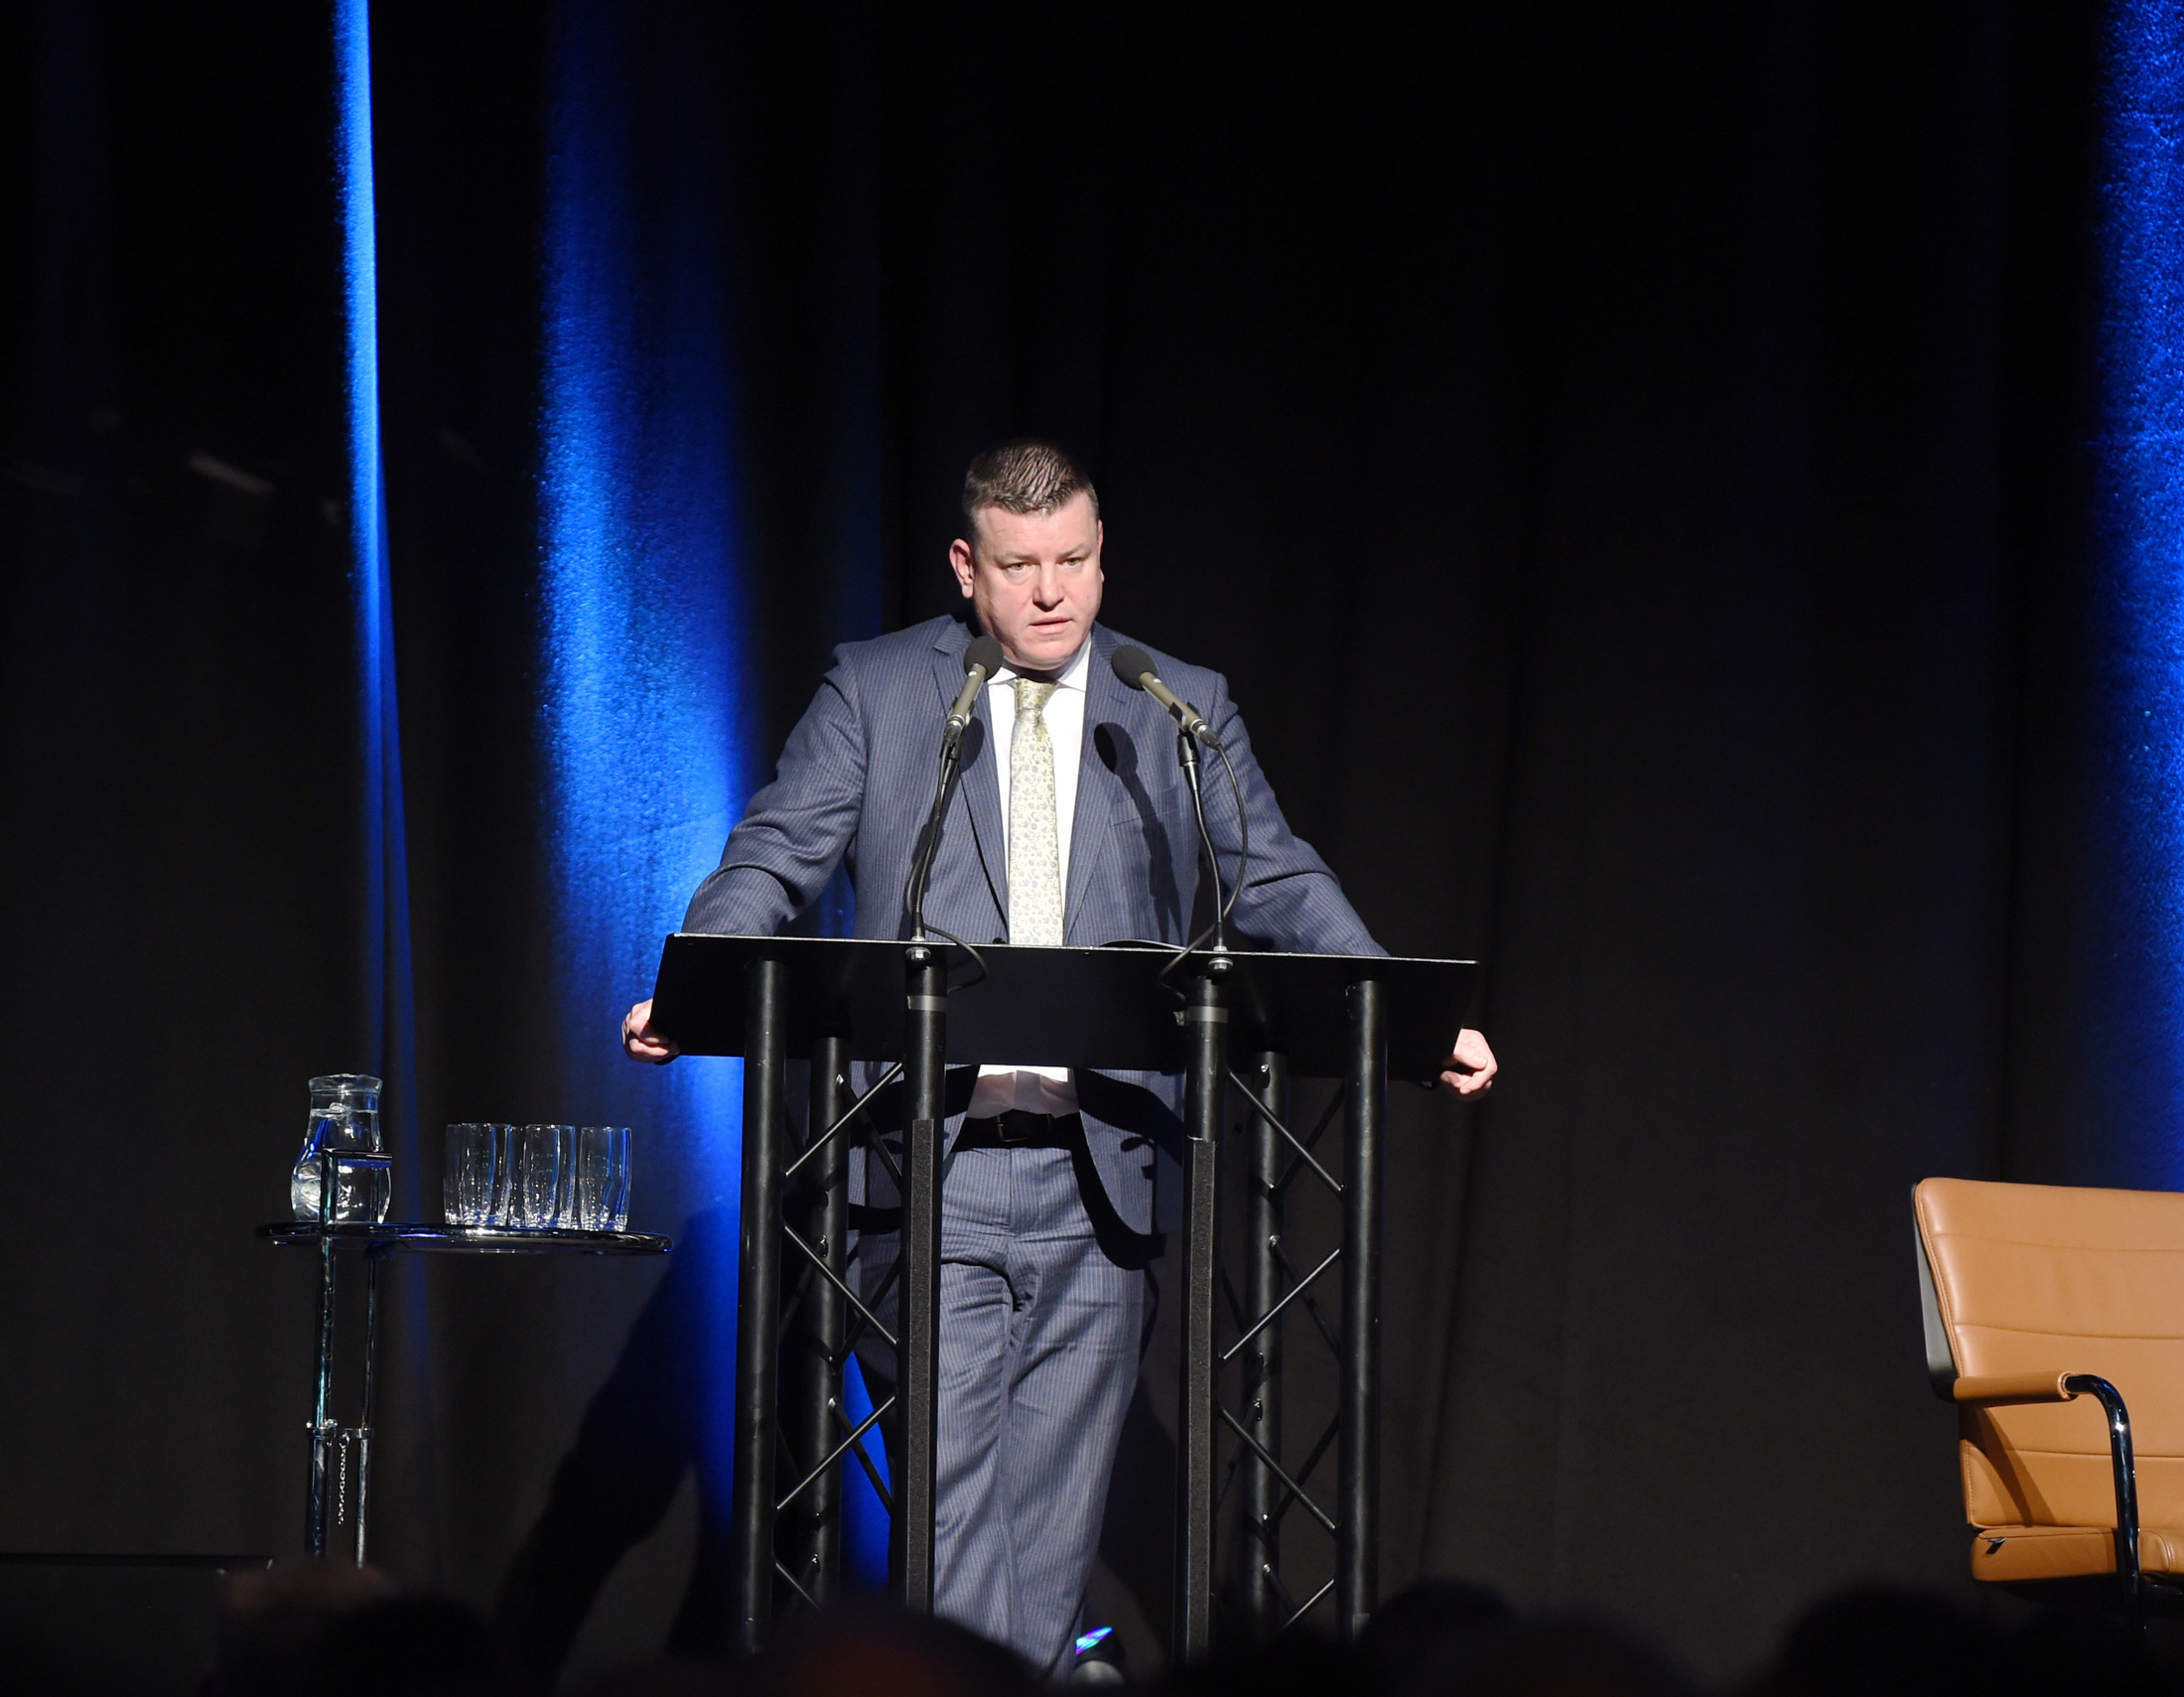 Solicitor Niall Murphy speaking to the 2,000 strong audience at the Waterfront Hall